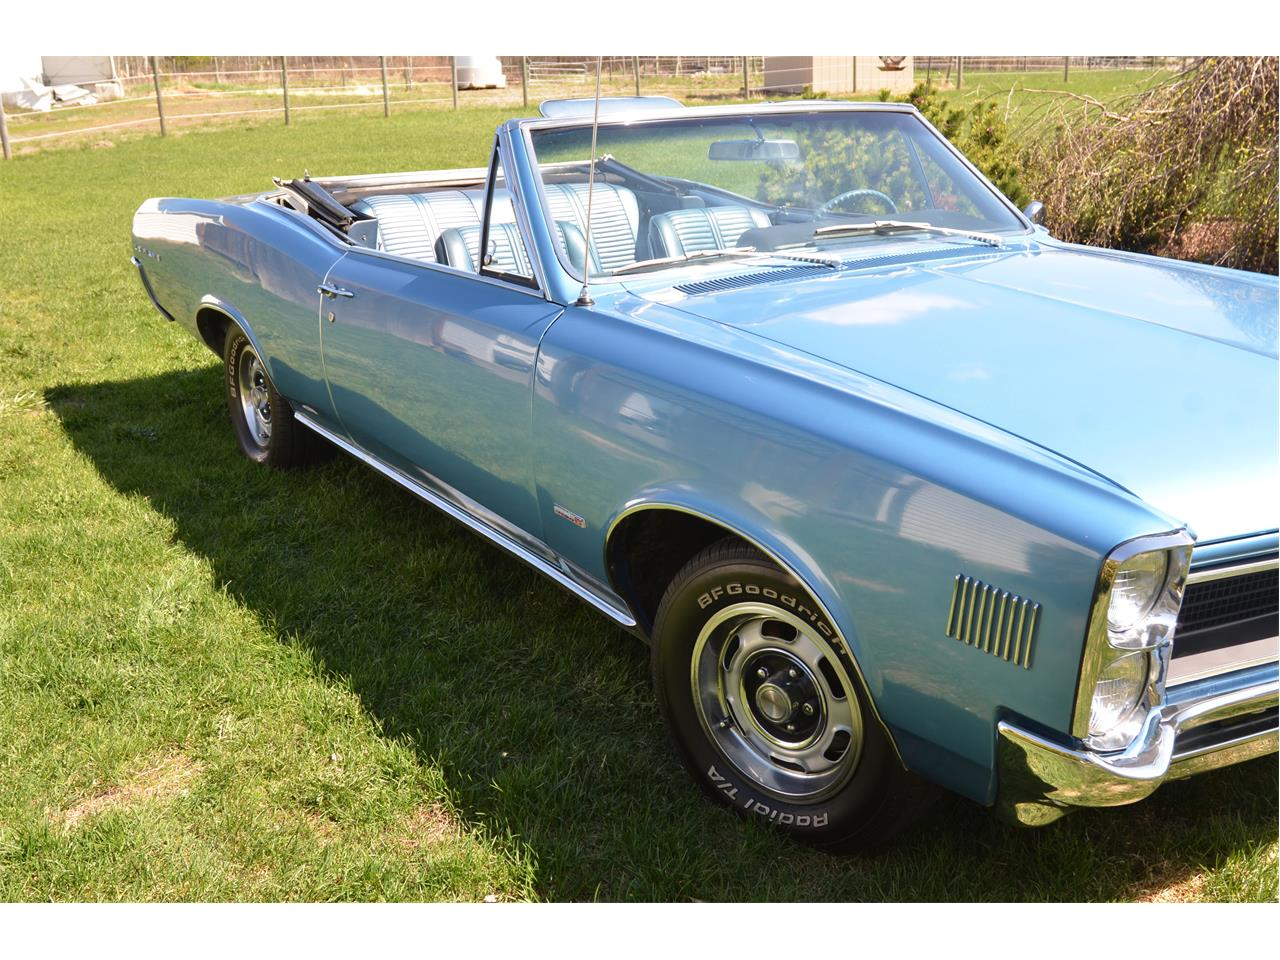 Large Picture of '66 Pontiac LeMans located in Prince George British Columbia - $32,000.00 - GCAH